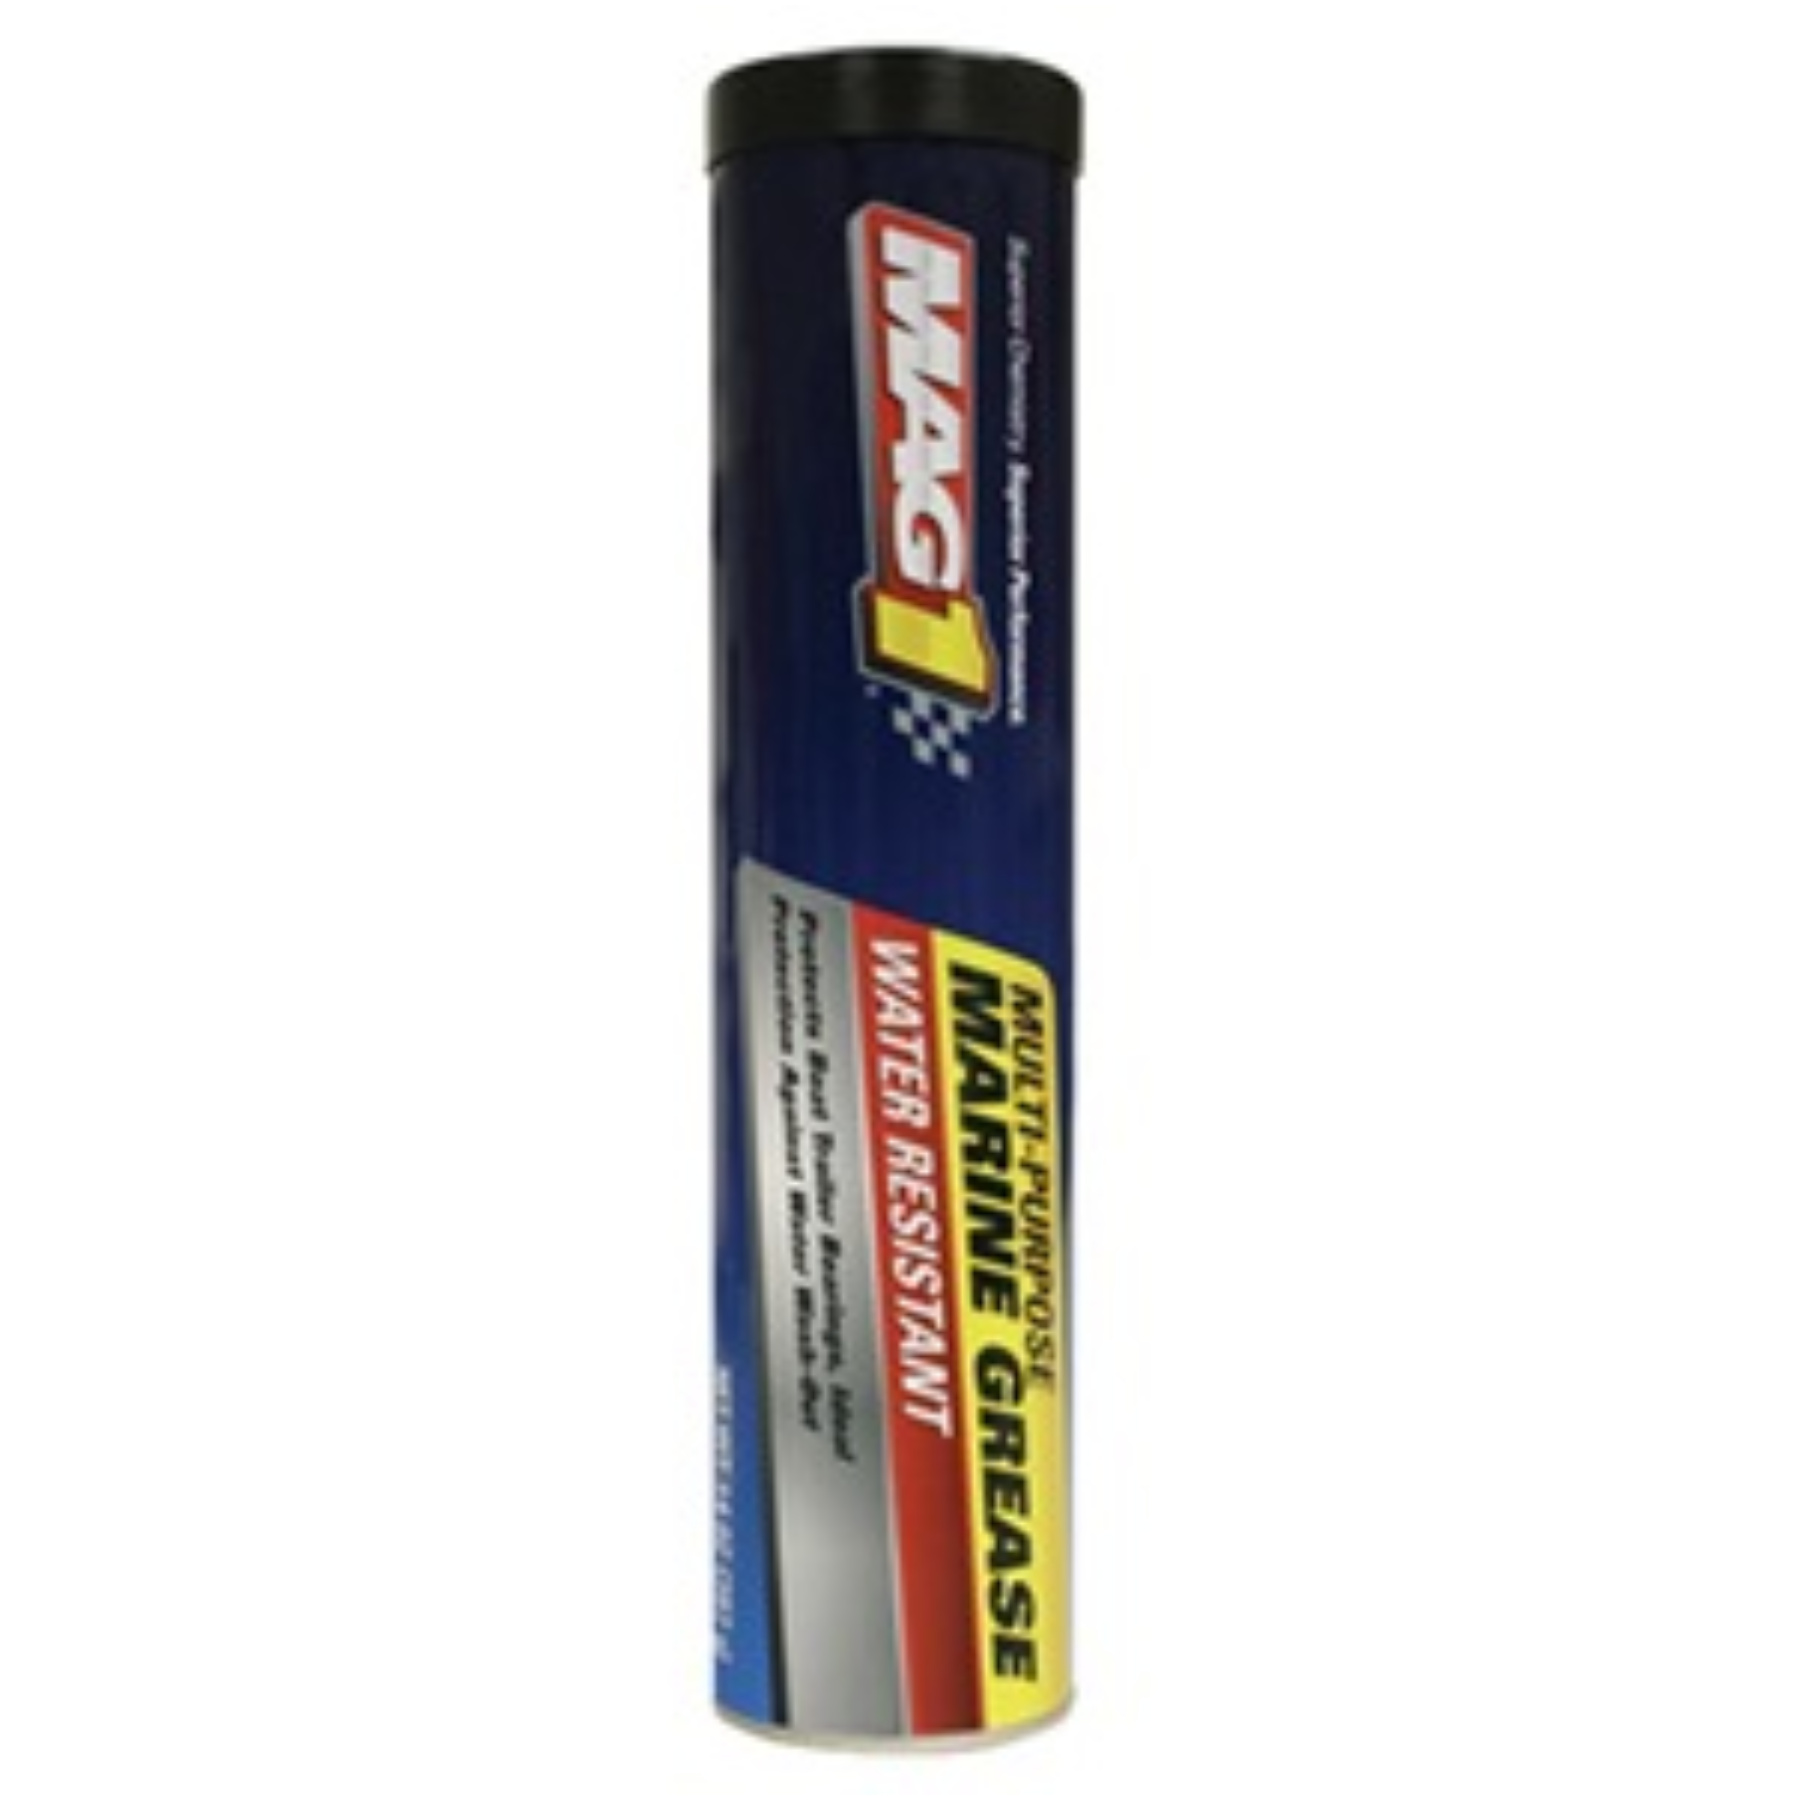 60130 14OZ MAG1 MARINE GREASE